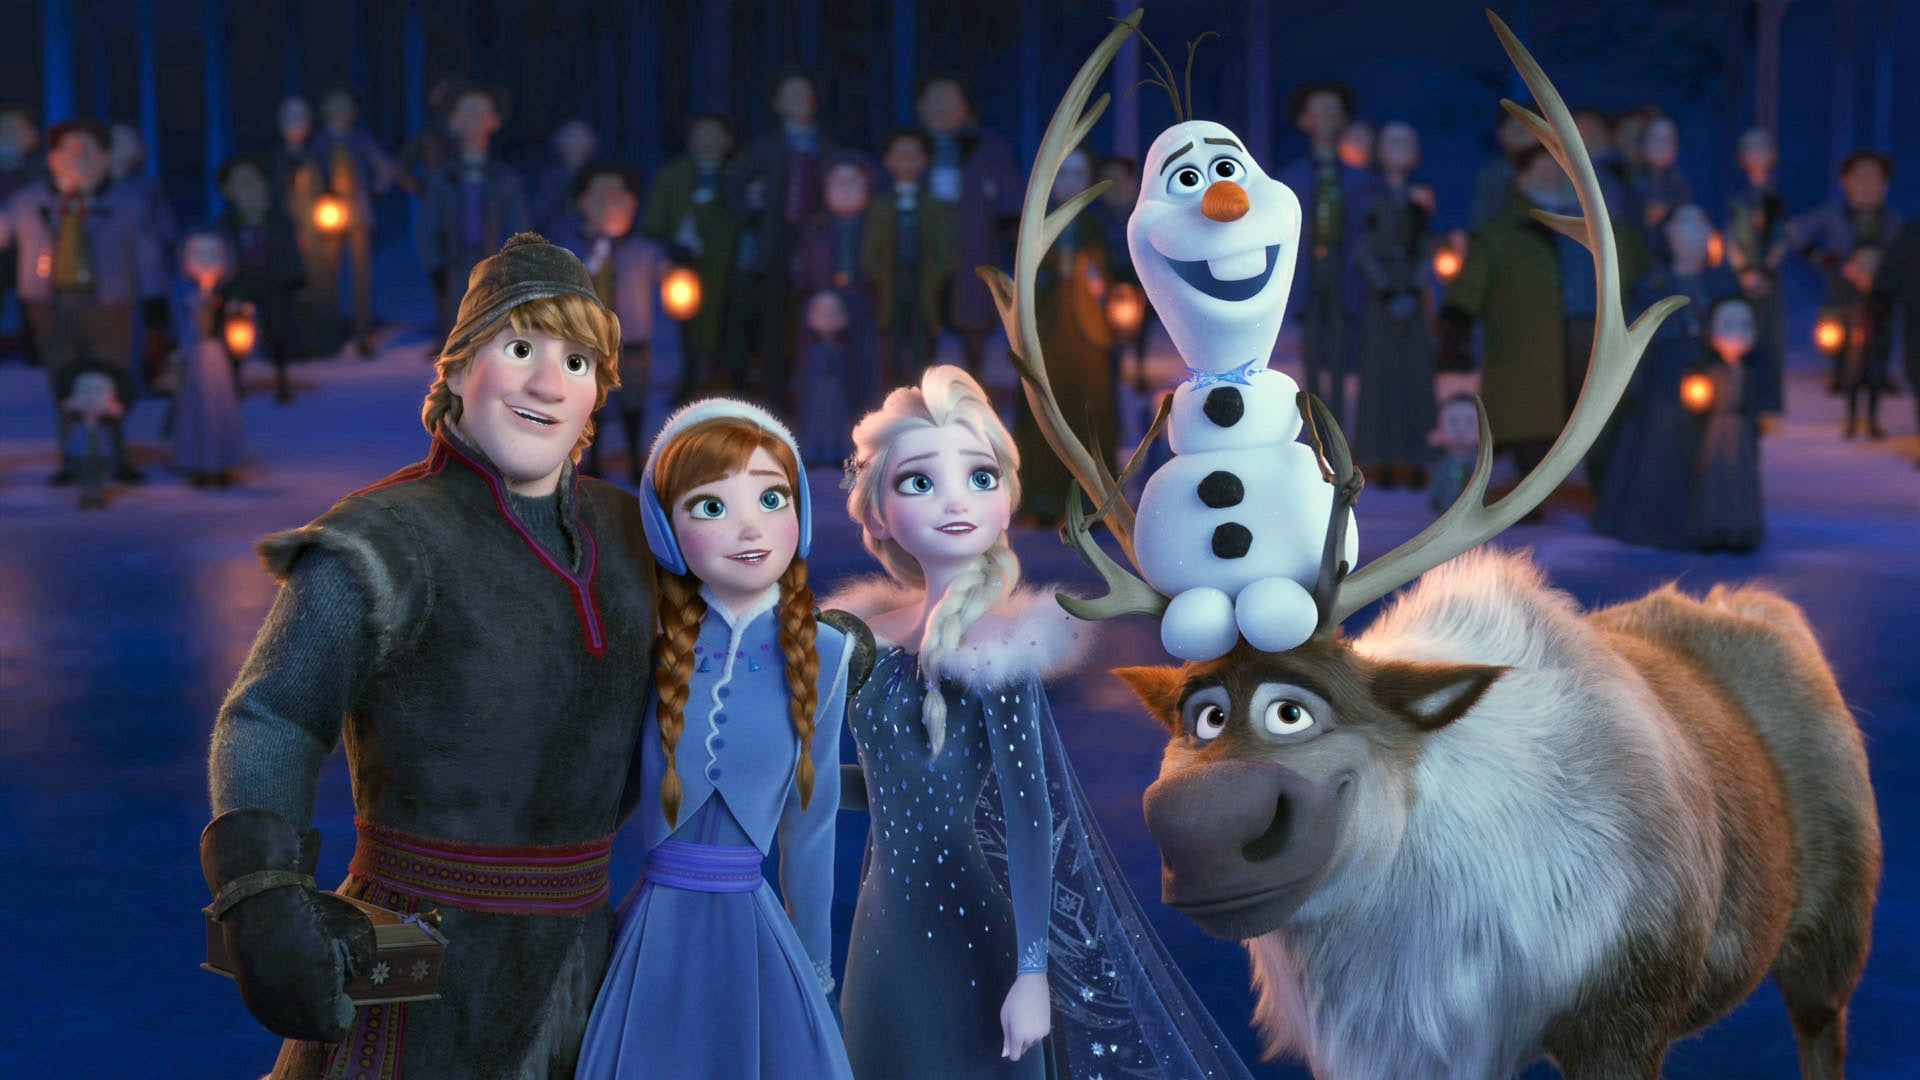 OLAF'S FROZEN ADVENTURE, from left: Kristoff (voice: Jonathan Groff), Anna (voice: Kristen Bell), Elsa (voice: Idina Menzel), Olaf (voice: Josh Gad), Sven, 2017.  Walt Disney Studios Motion Pictures/courtesy Everett Collection